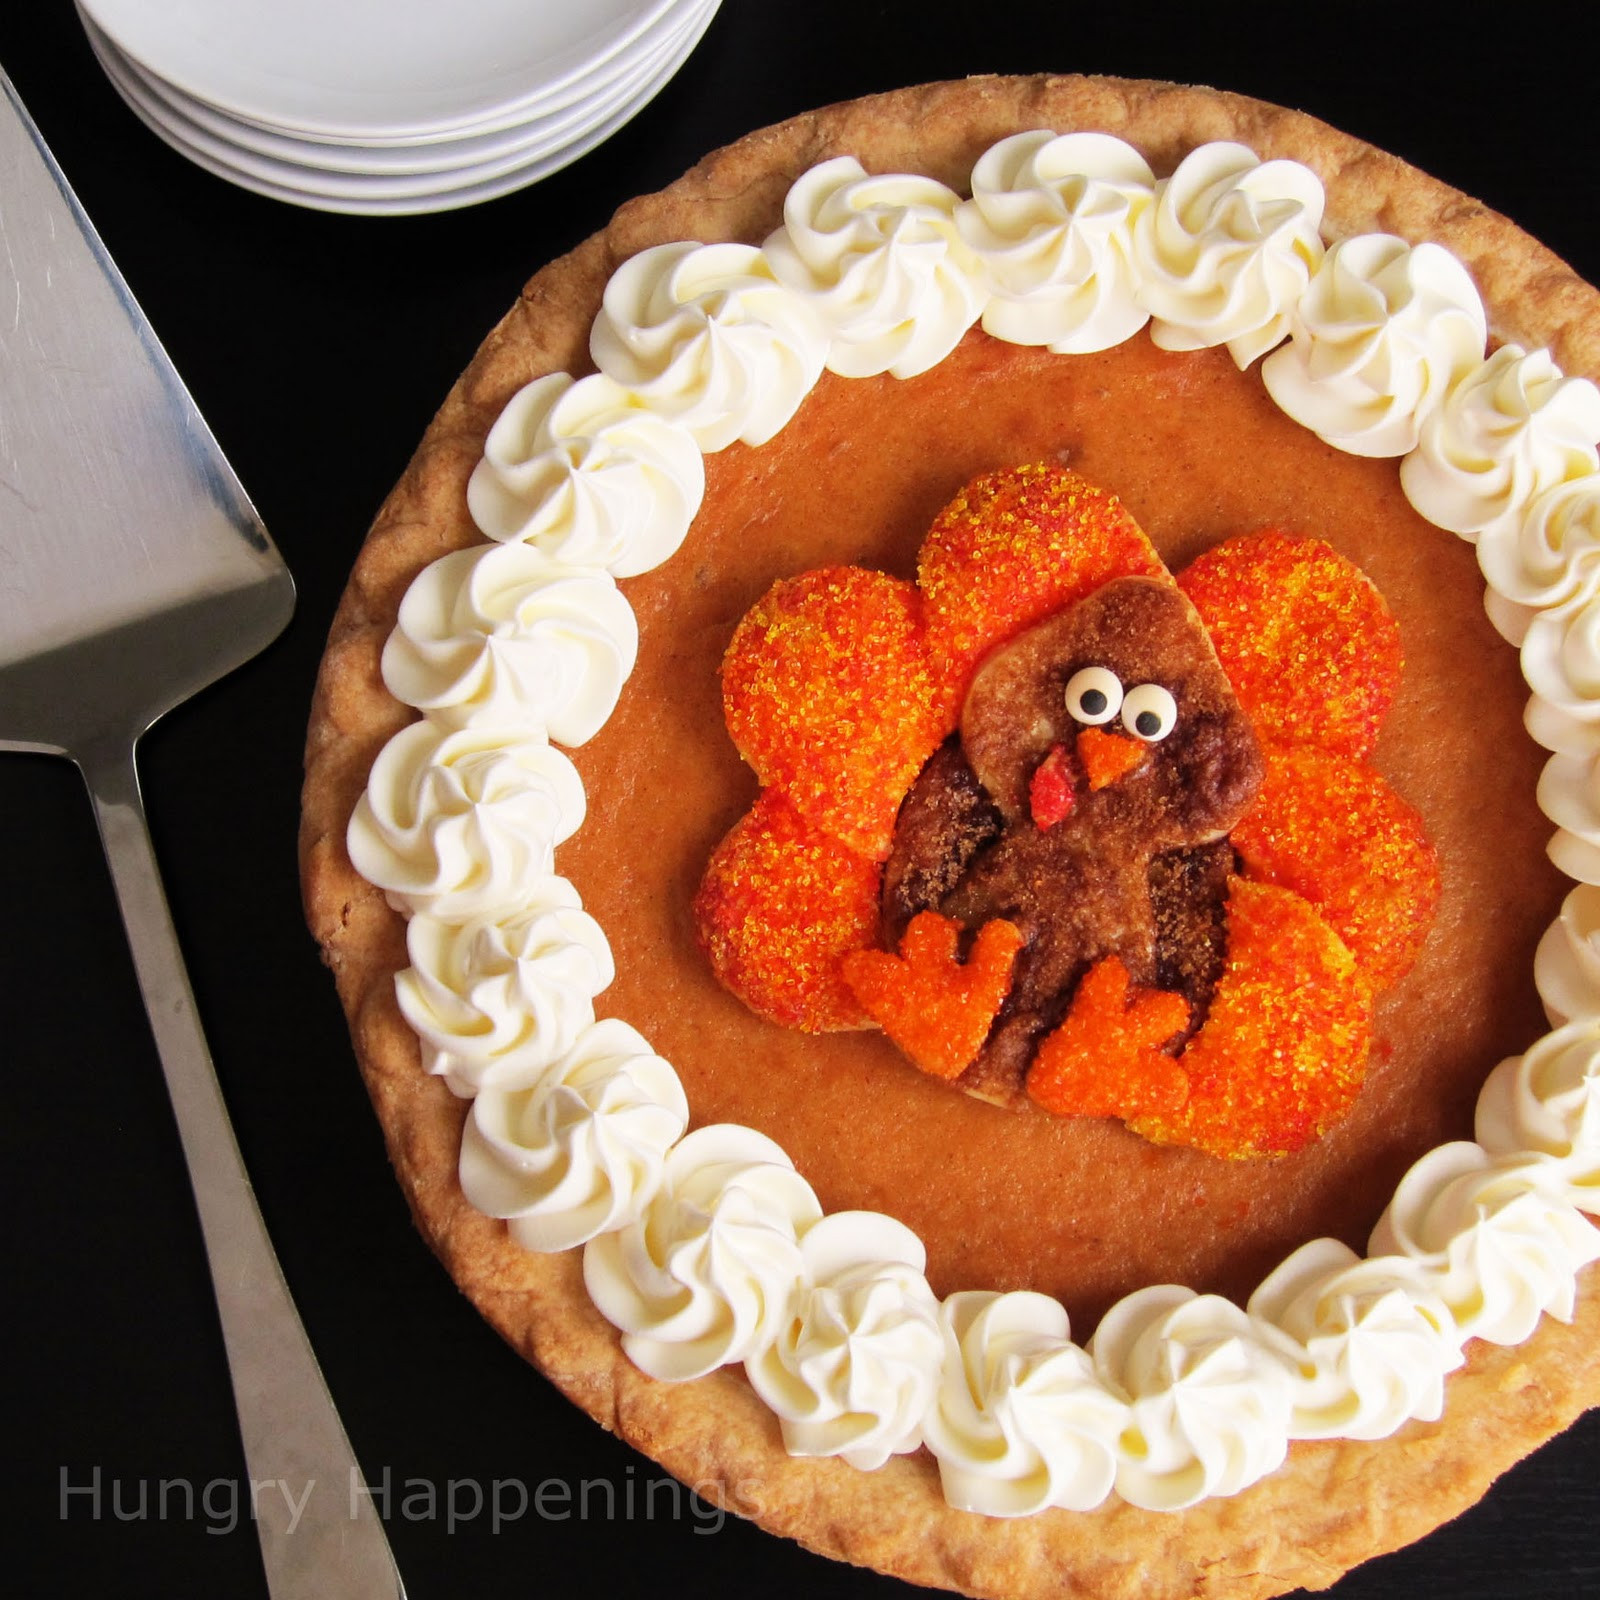 Pumpkin Pie Thanksgiving  Decorated Pumpkin Pie Festive Thanksgiving Dessert